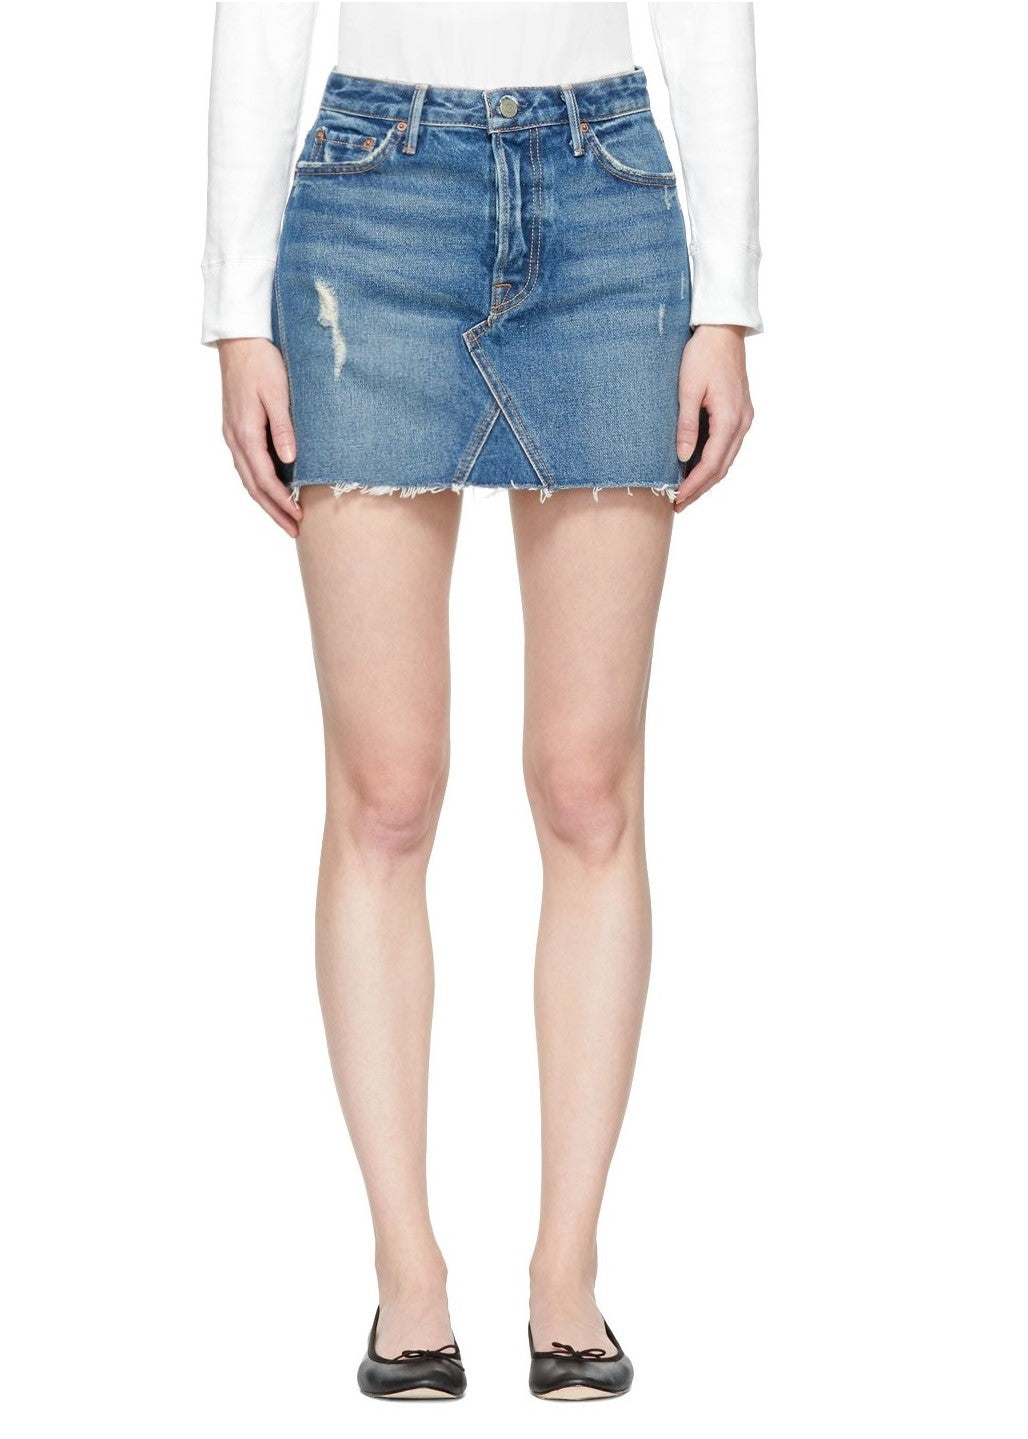 Grlfrnd denim Eva gusset skirt - walk this way